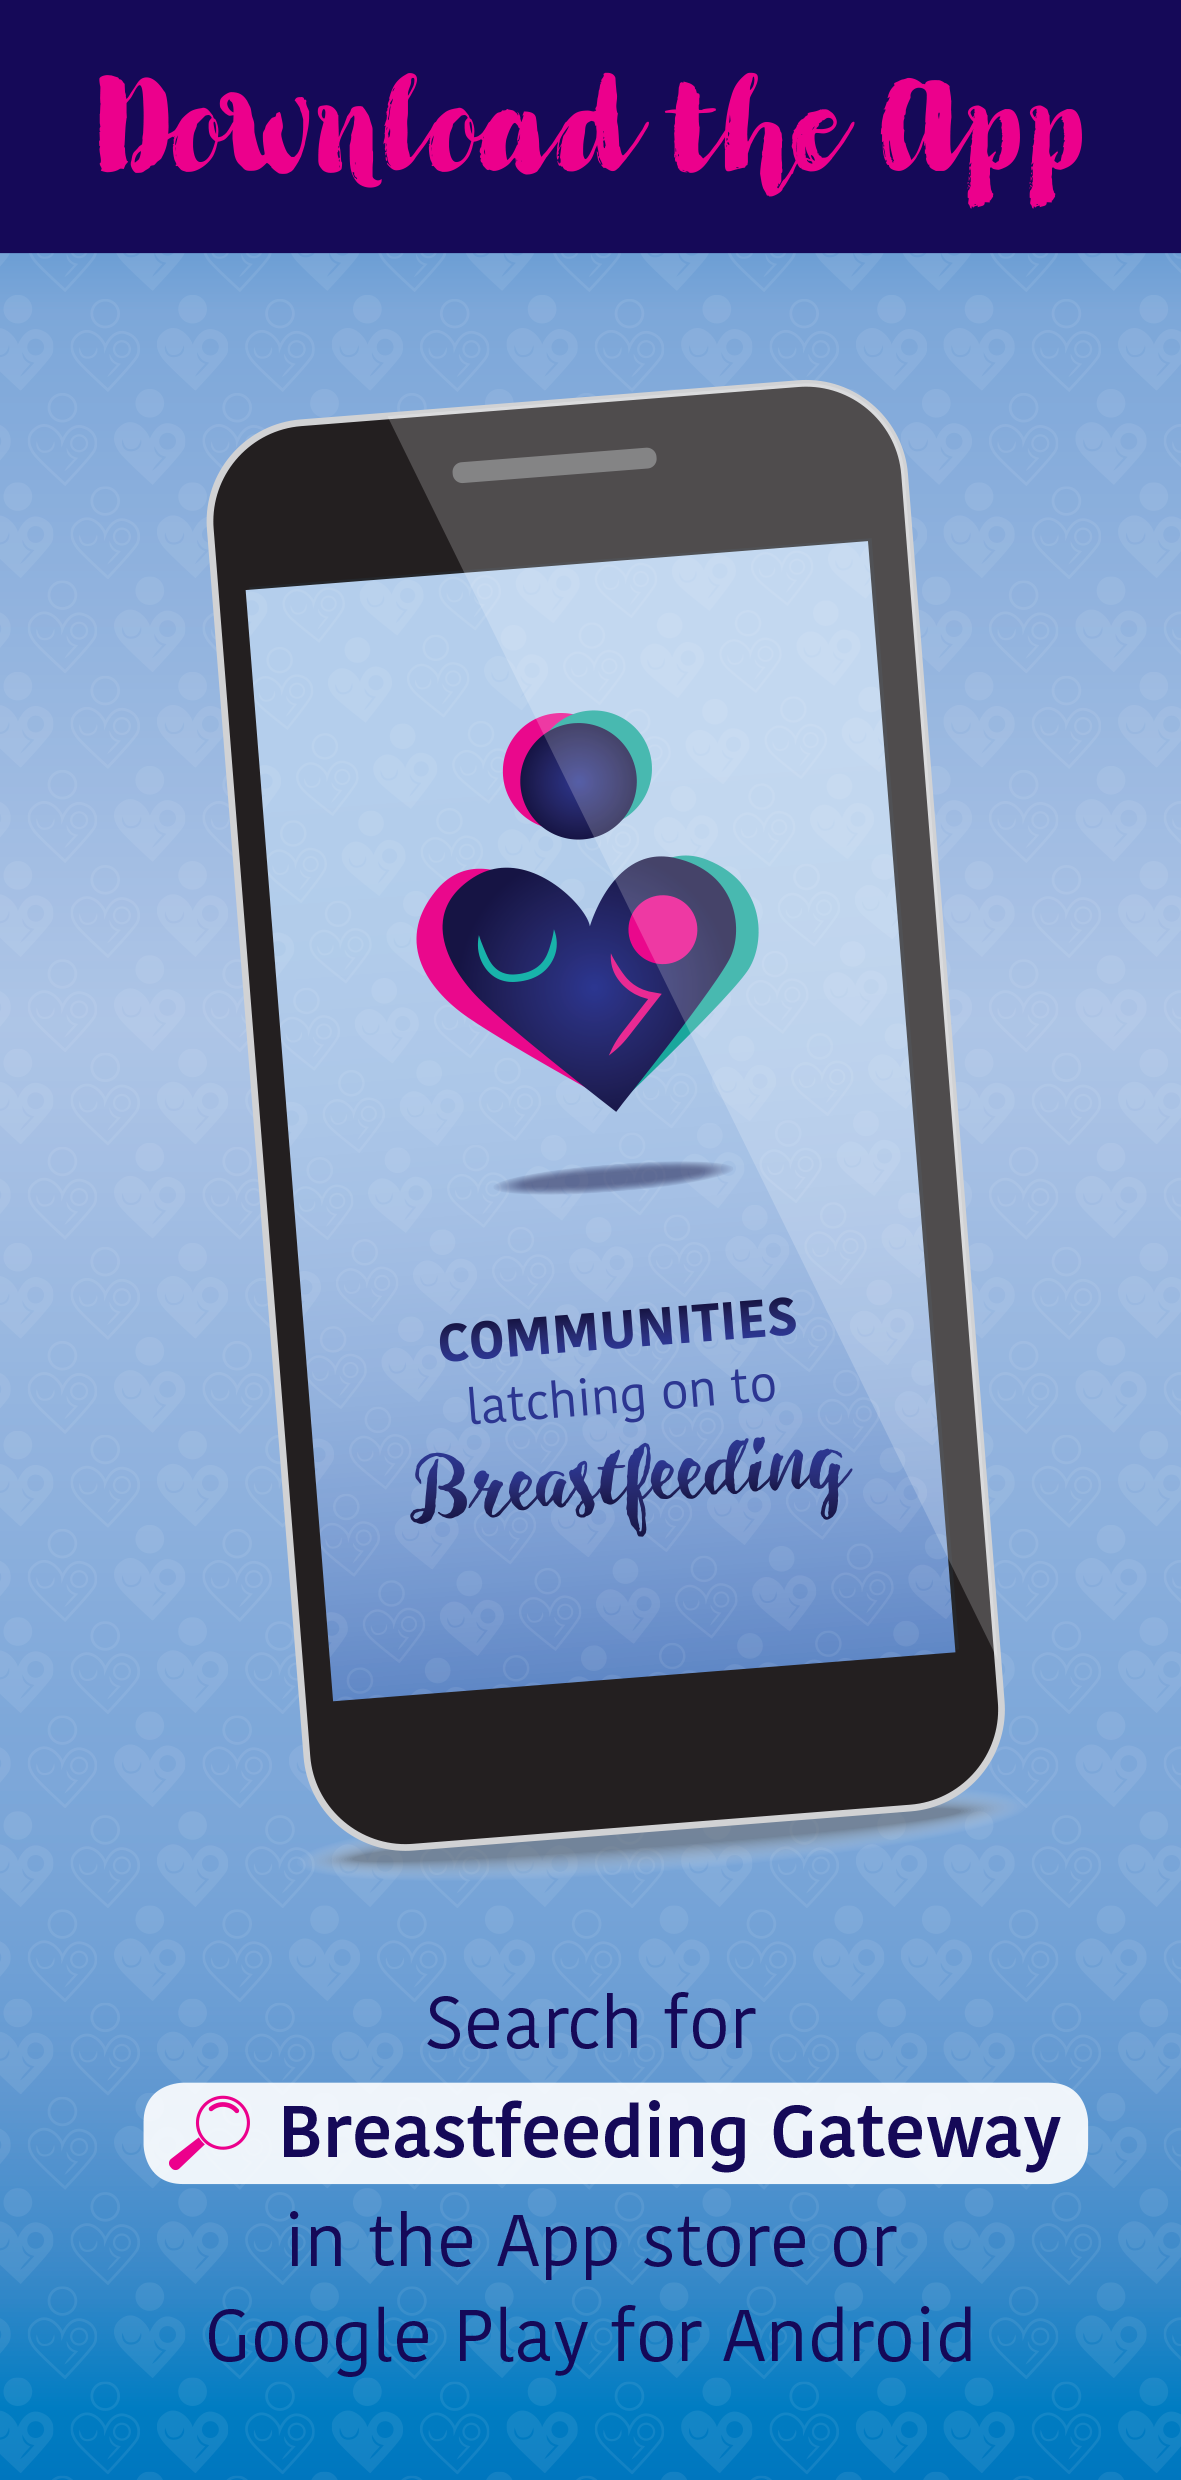 Communities Latching on to Breastfeeding app